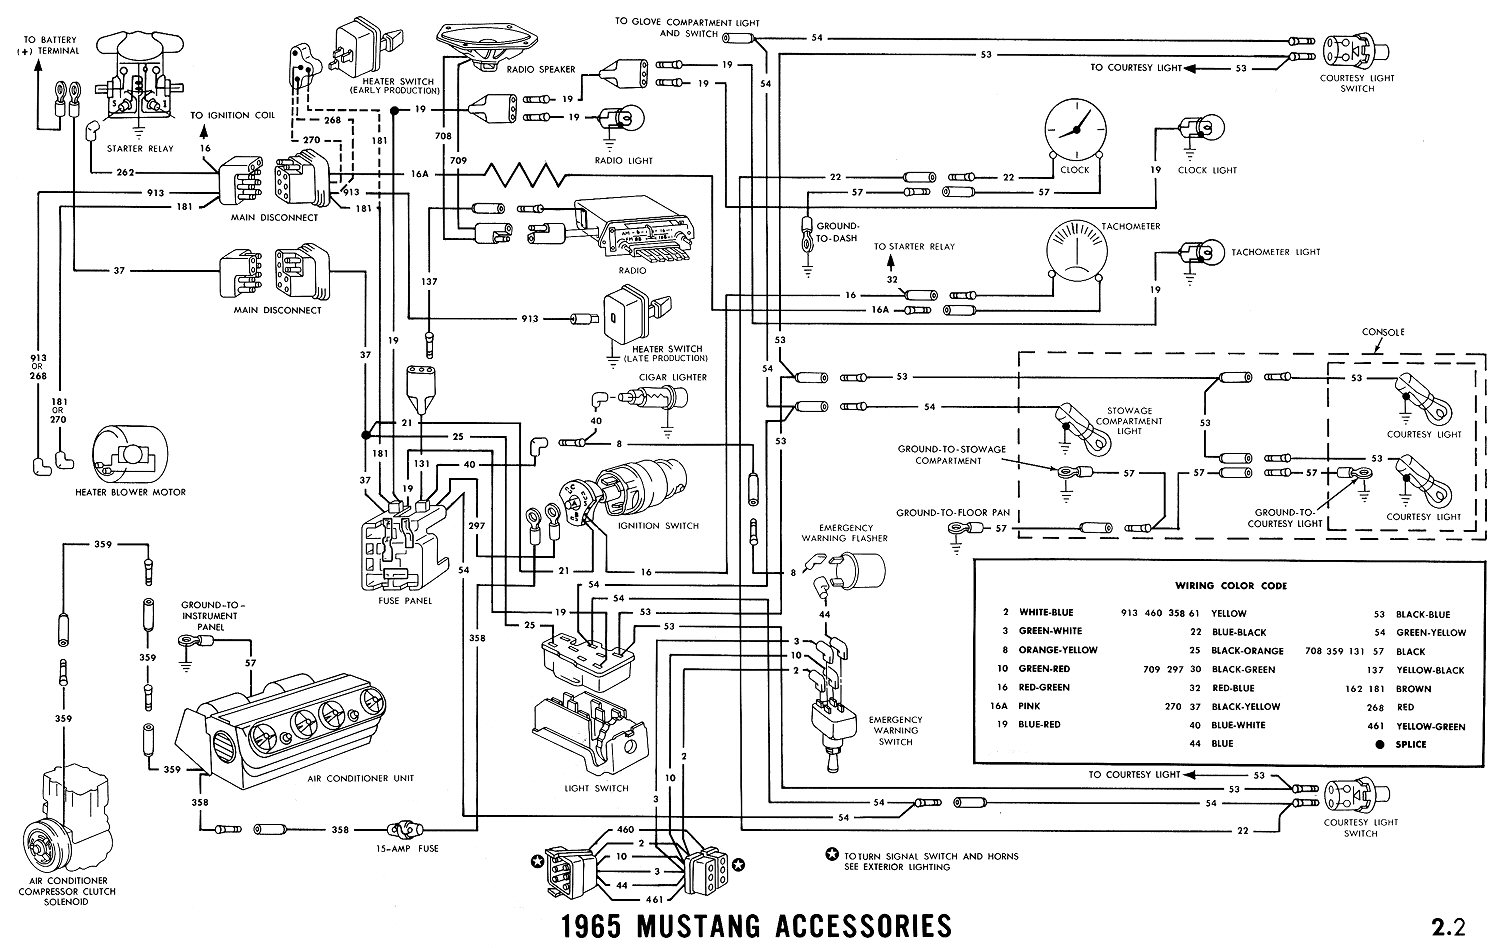 Wiring Diagram For 1965 Ford Mustang